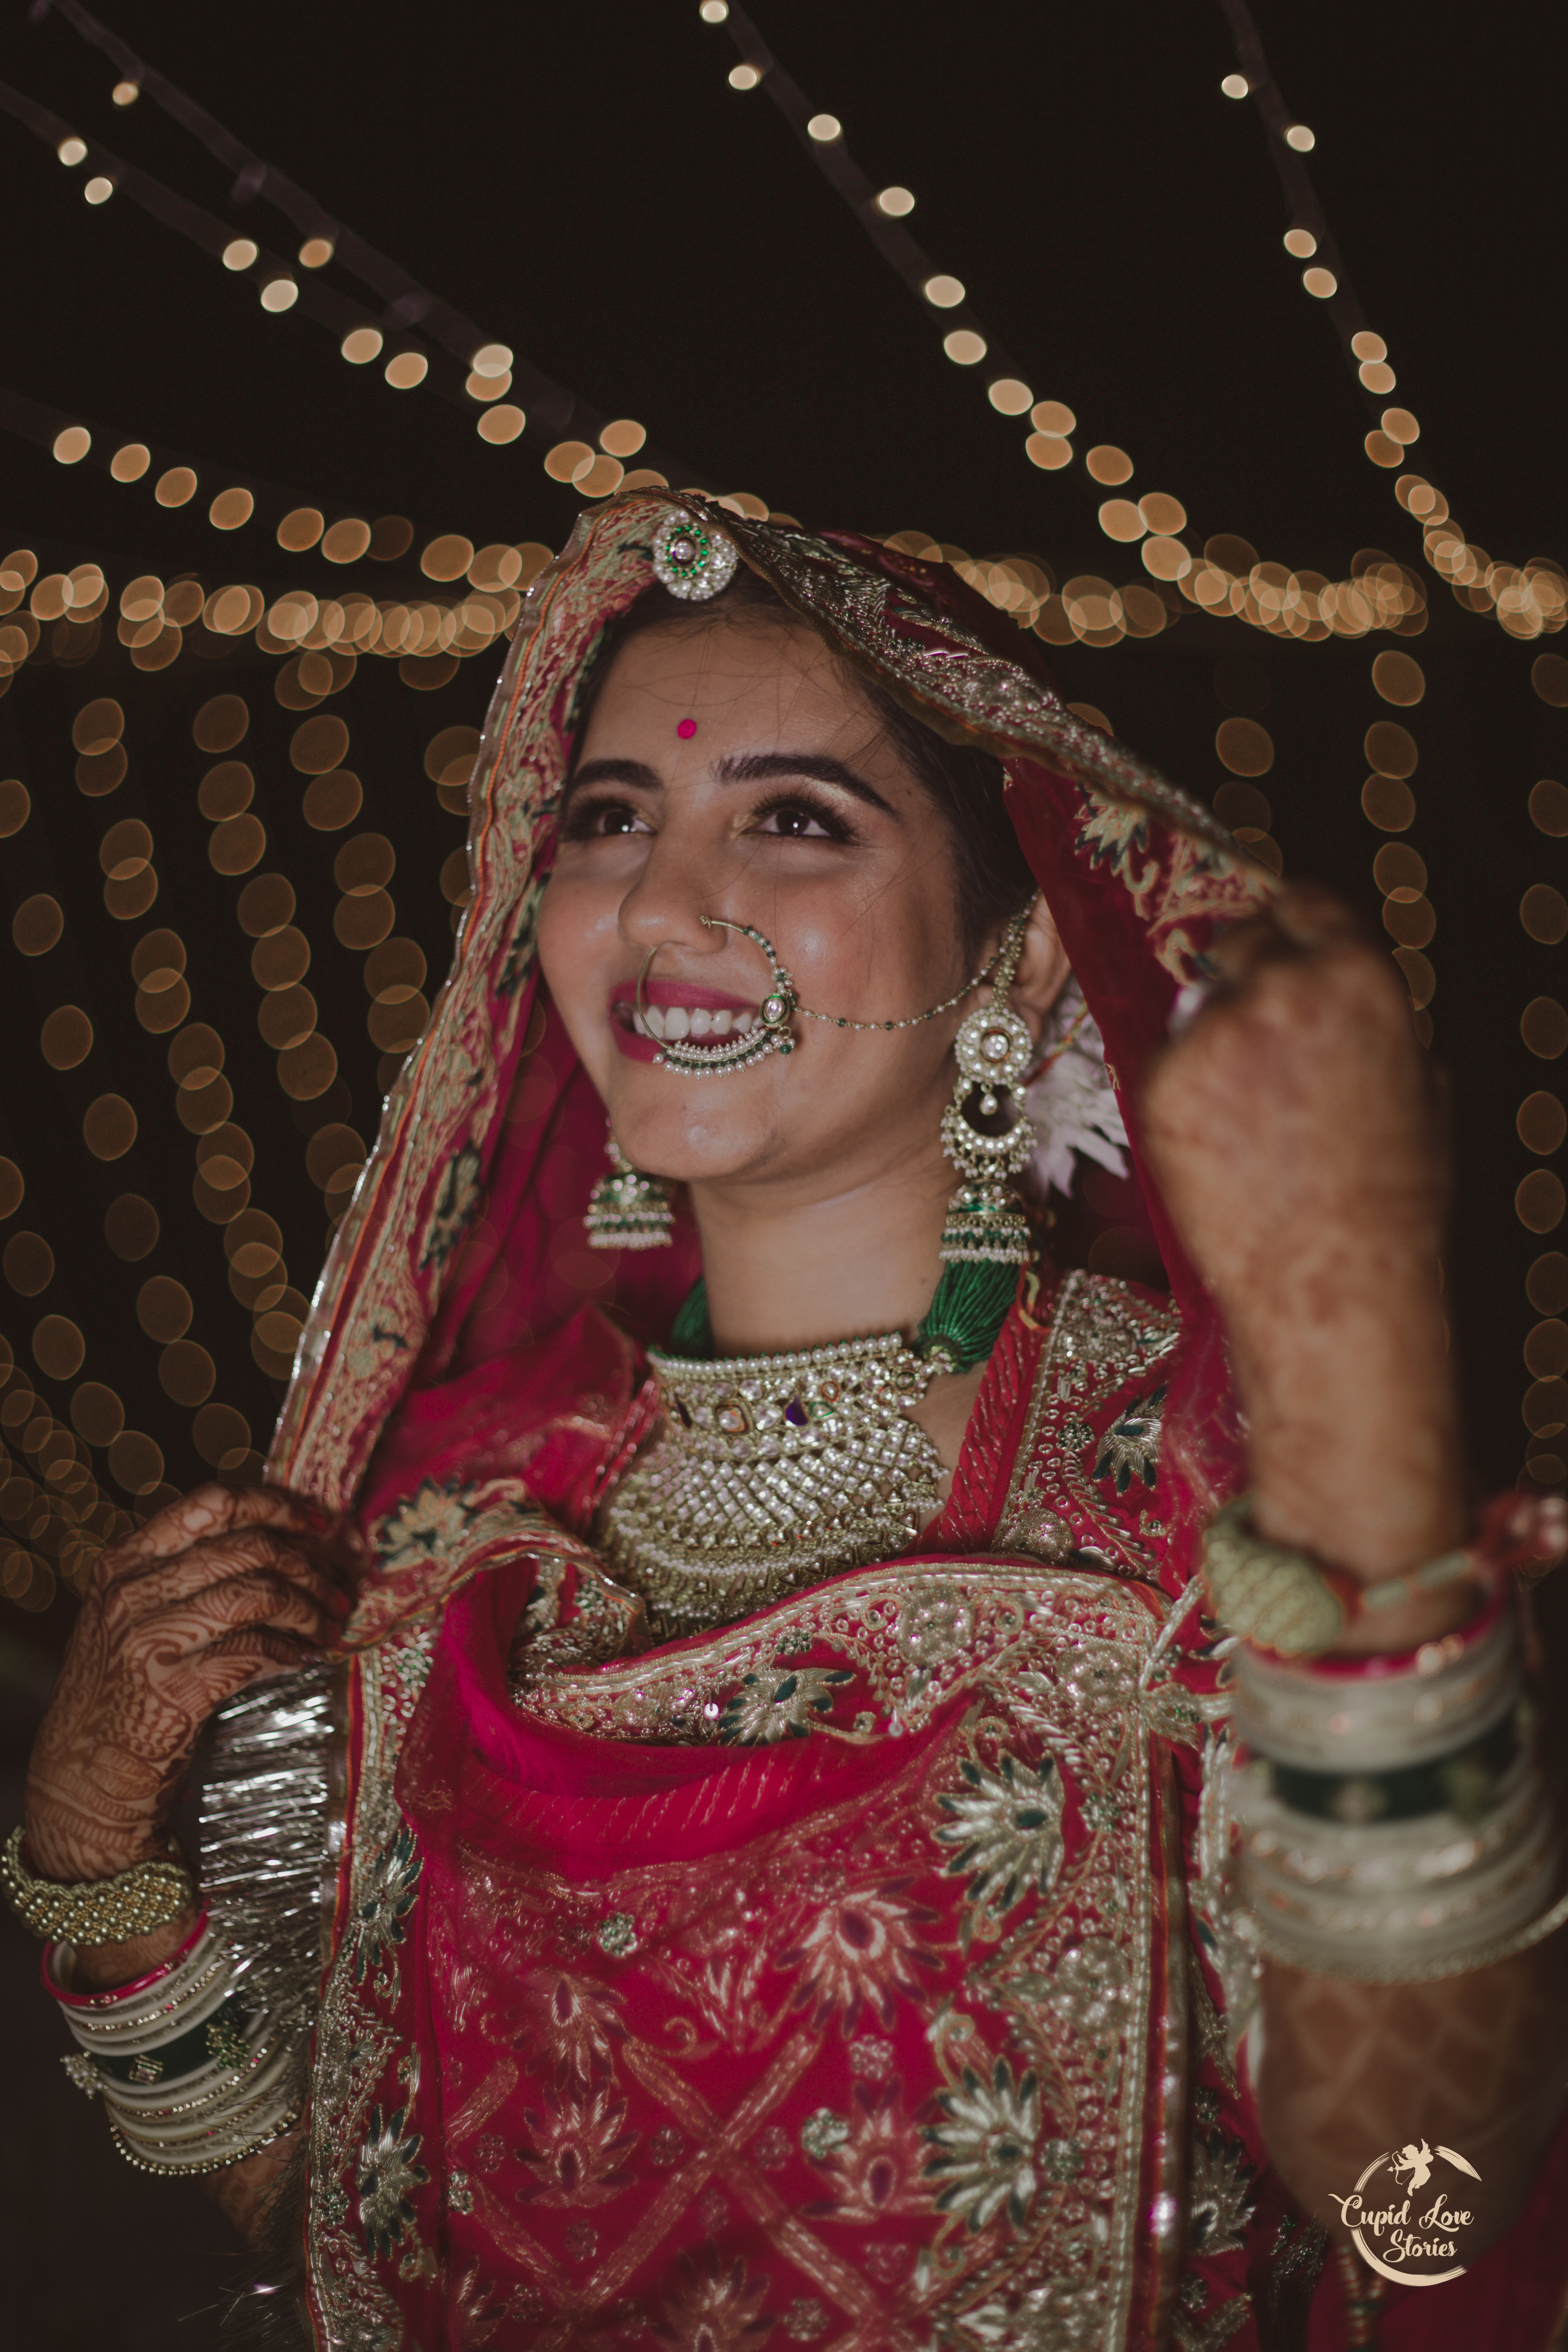 Traditional Indian bride under the lights wearing a beautiful maang-tikka